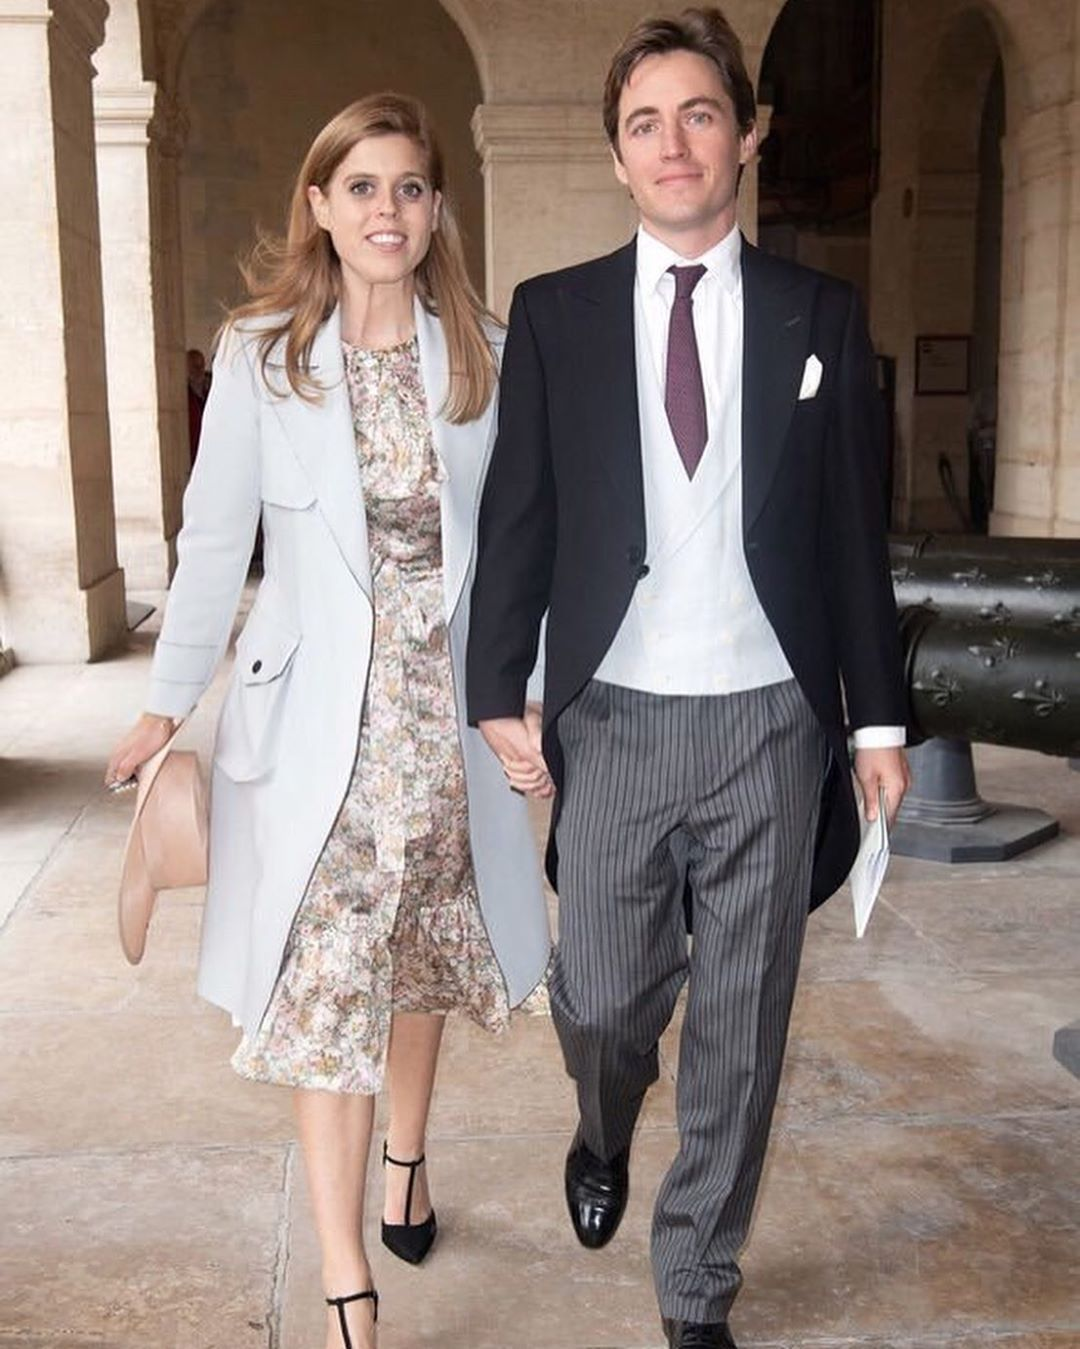 Windsor Royal Family On Instagram Princess Beatrice And Her Soon To Be Husband Edoardo Mapell Princess Beatrice Princess Beatrice Wedding Royal Wedding Gowns